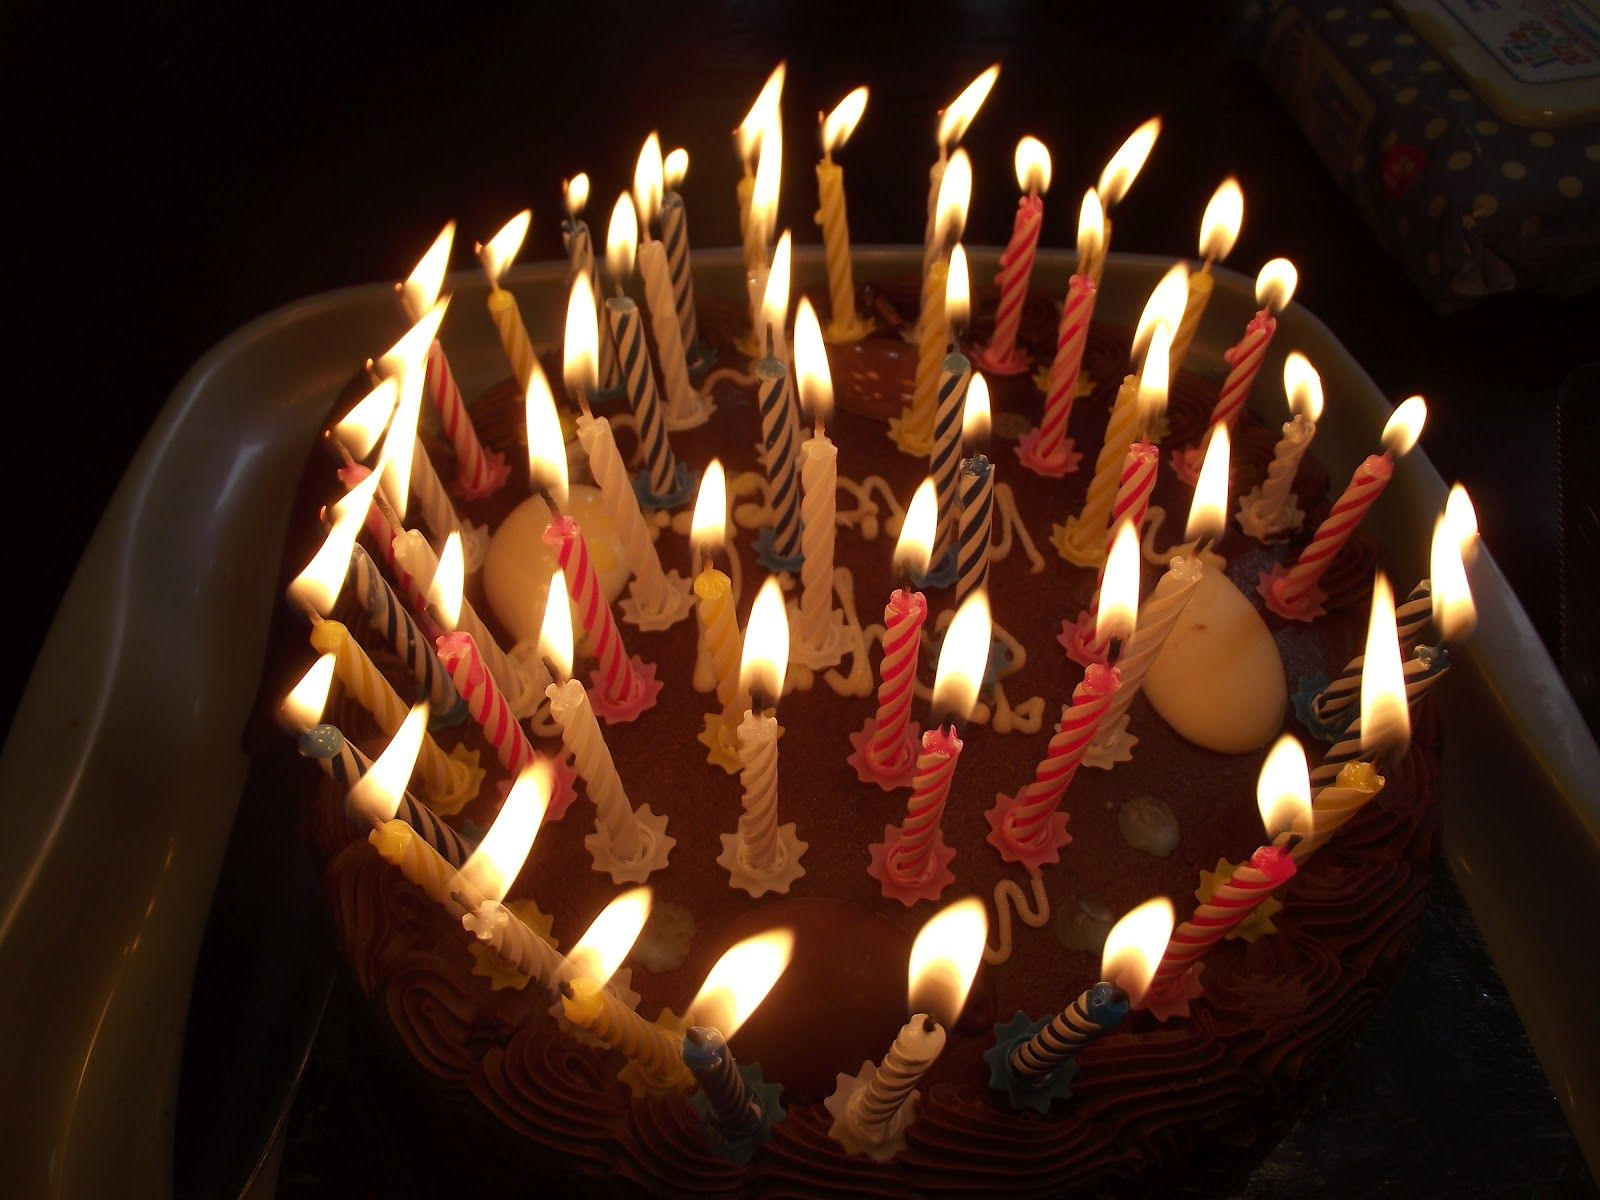 picture of birthday cake with 50 candles ; 6746f94794127a2c96c280571d0e6415